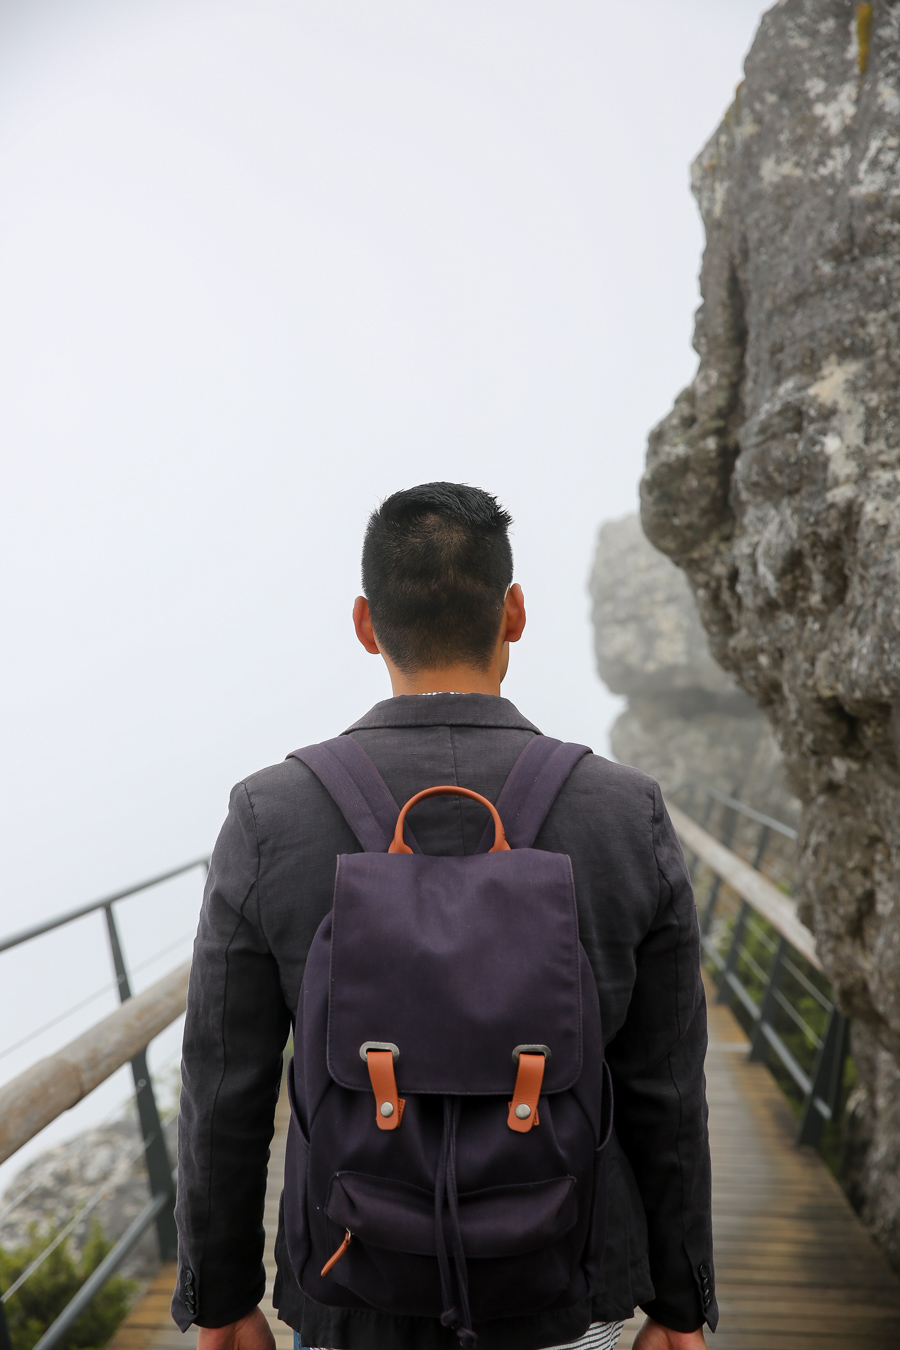 Table Mountain, Everlane Backpack, Levitate Style, Travel, Menswear, Cape Town, What to Wear